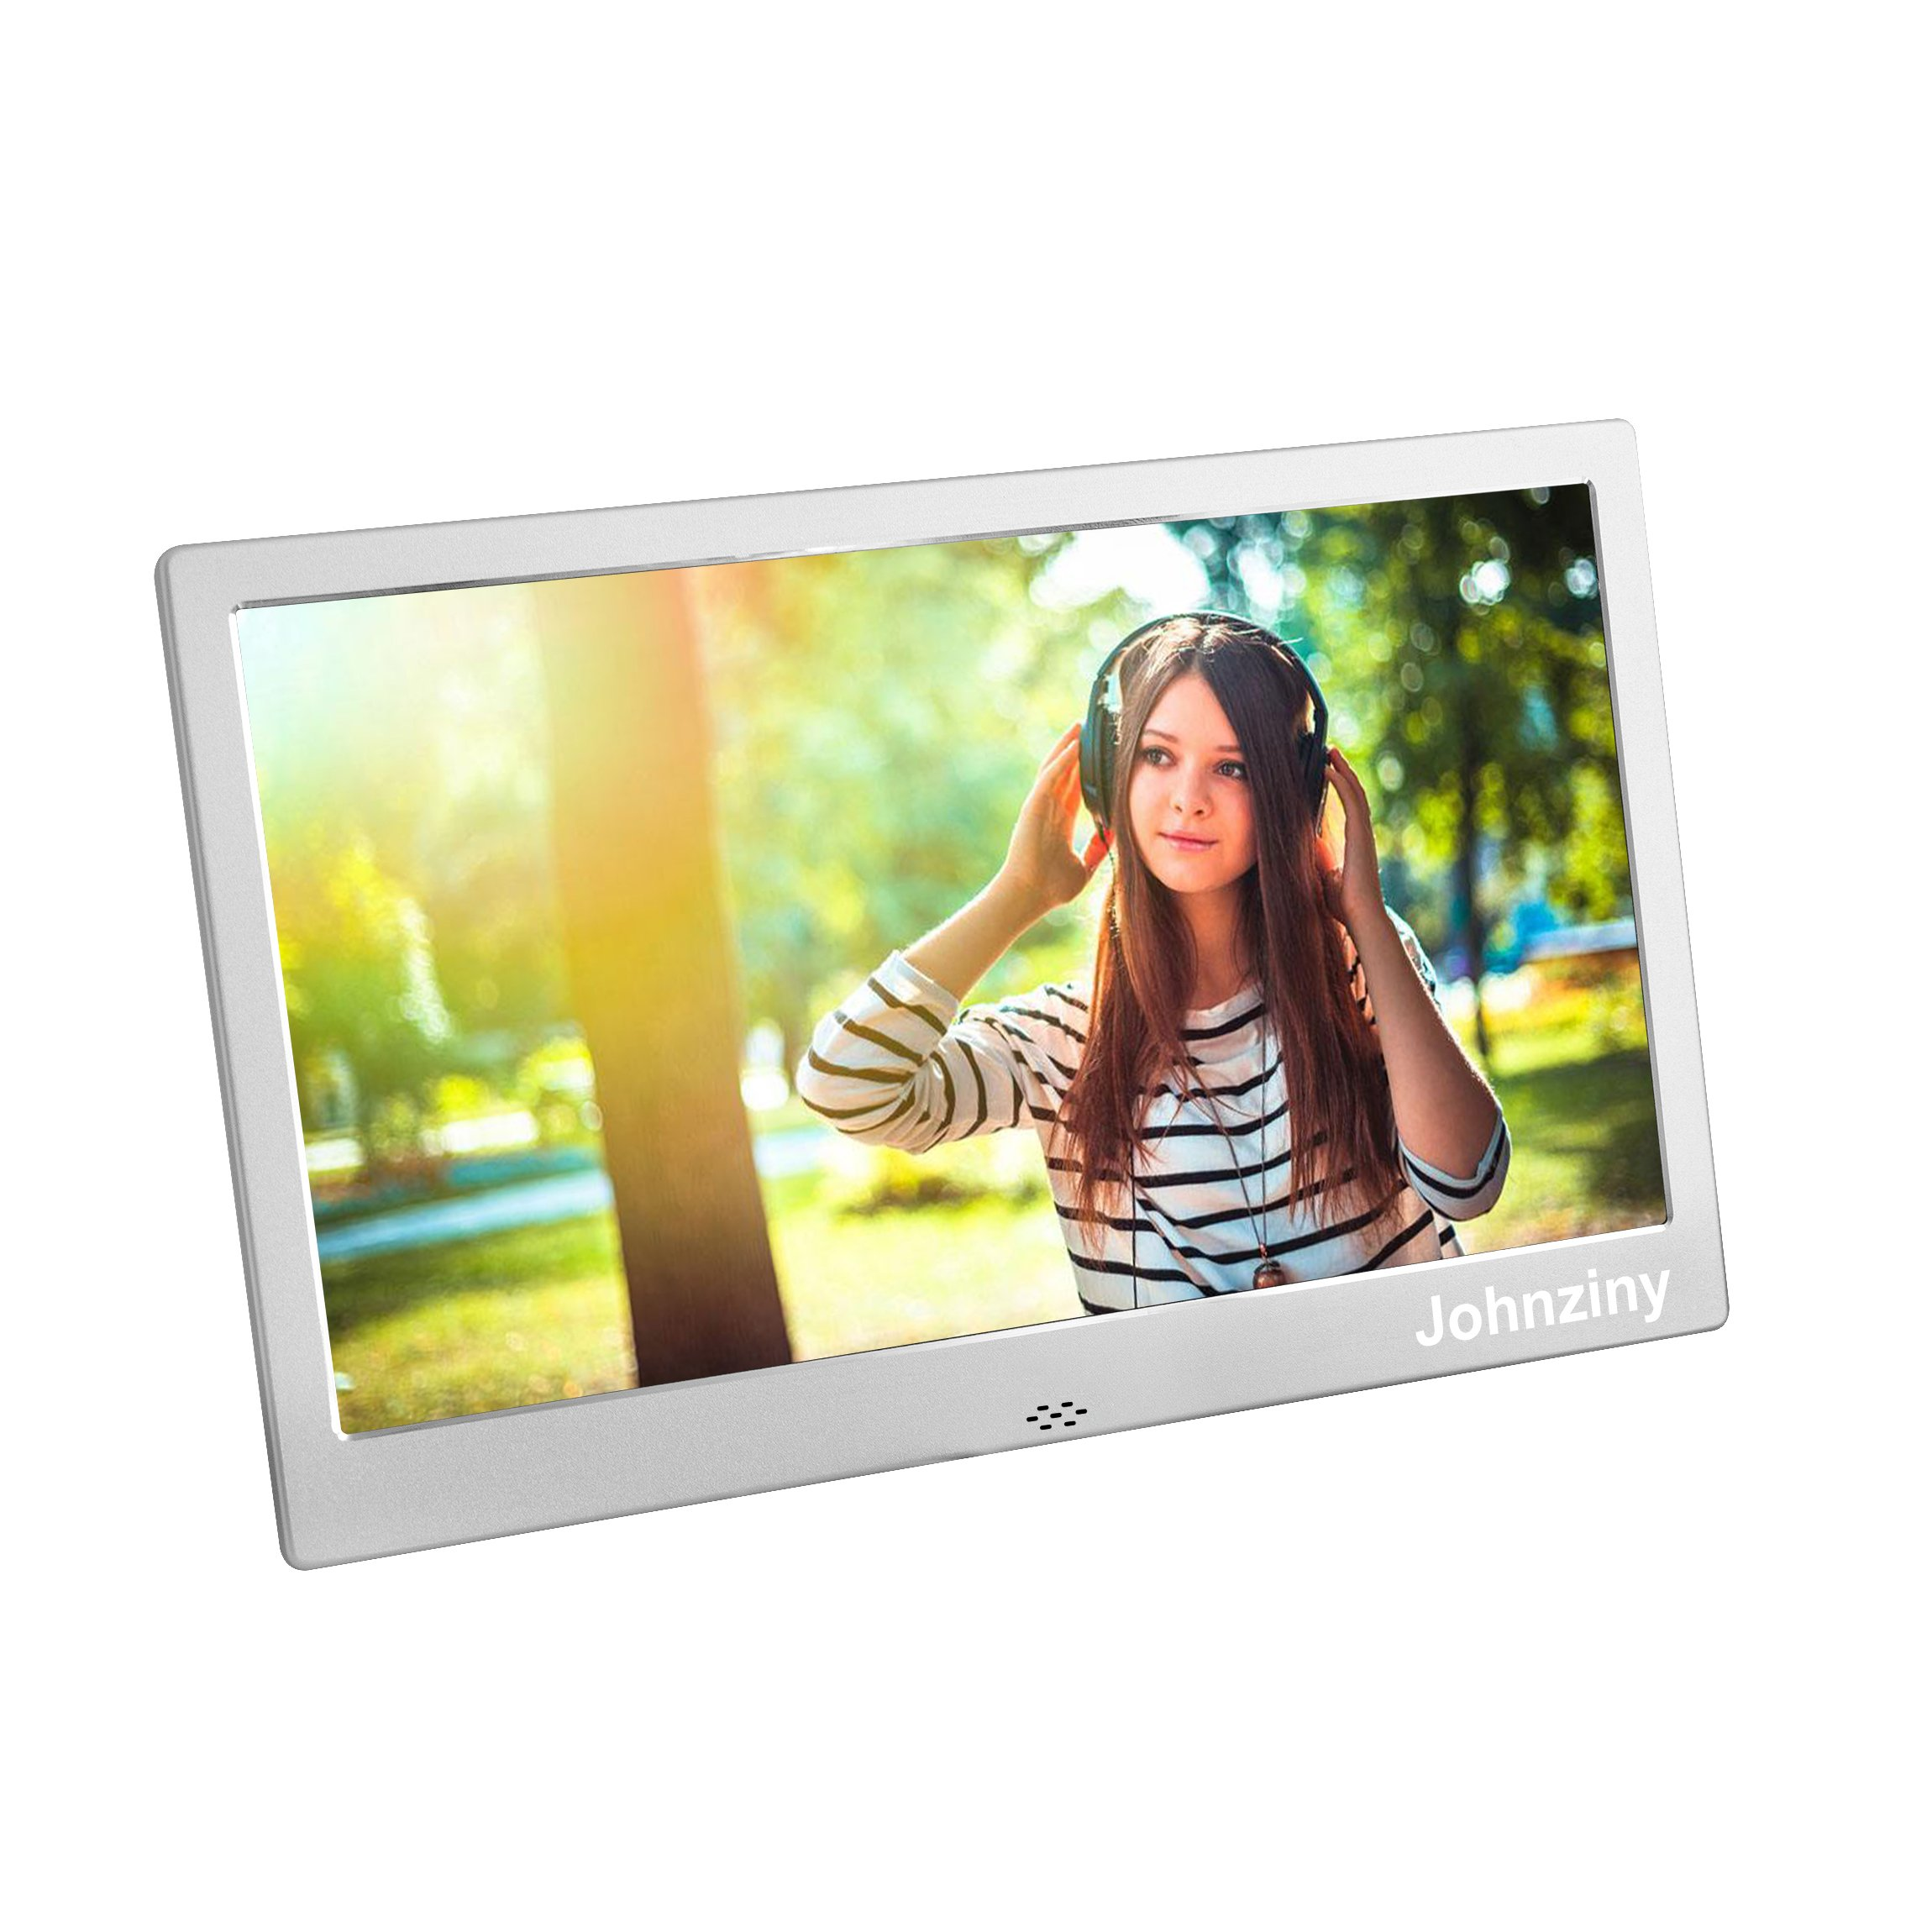 10 Inch Digital Photo Frame- Metal Electronic Picture Frame with 1024x600 High Resolution Display & Remote Controller Support SD/MMC /MS Card/USB Port